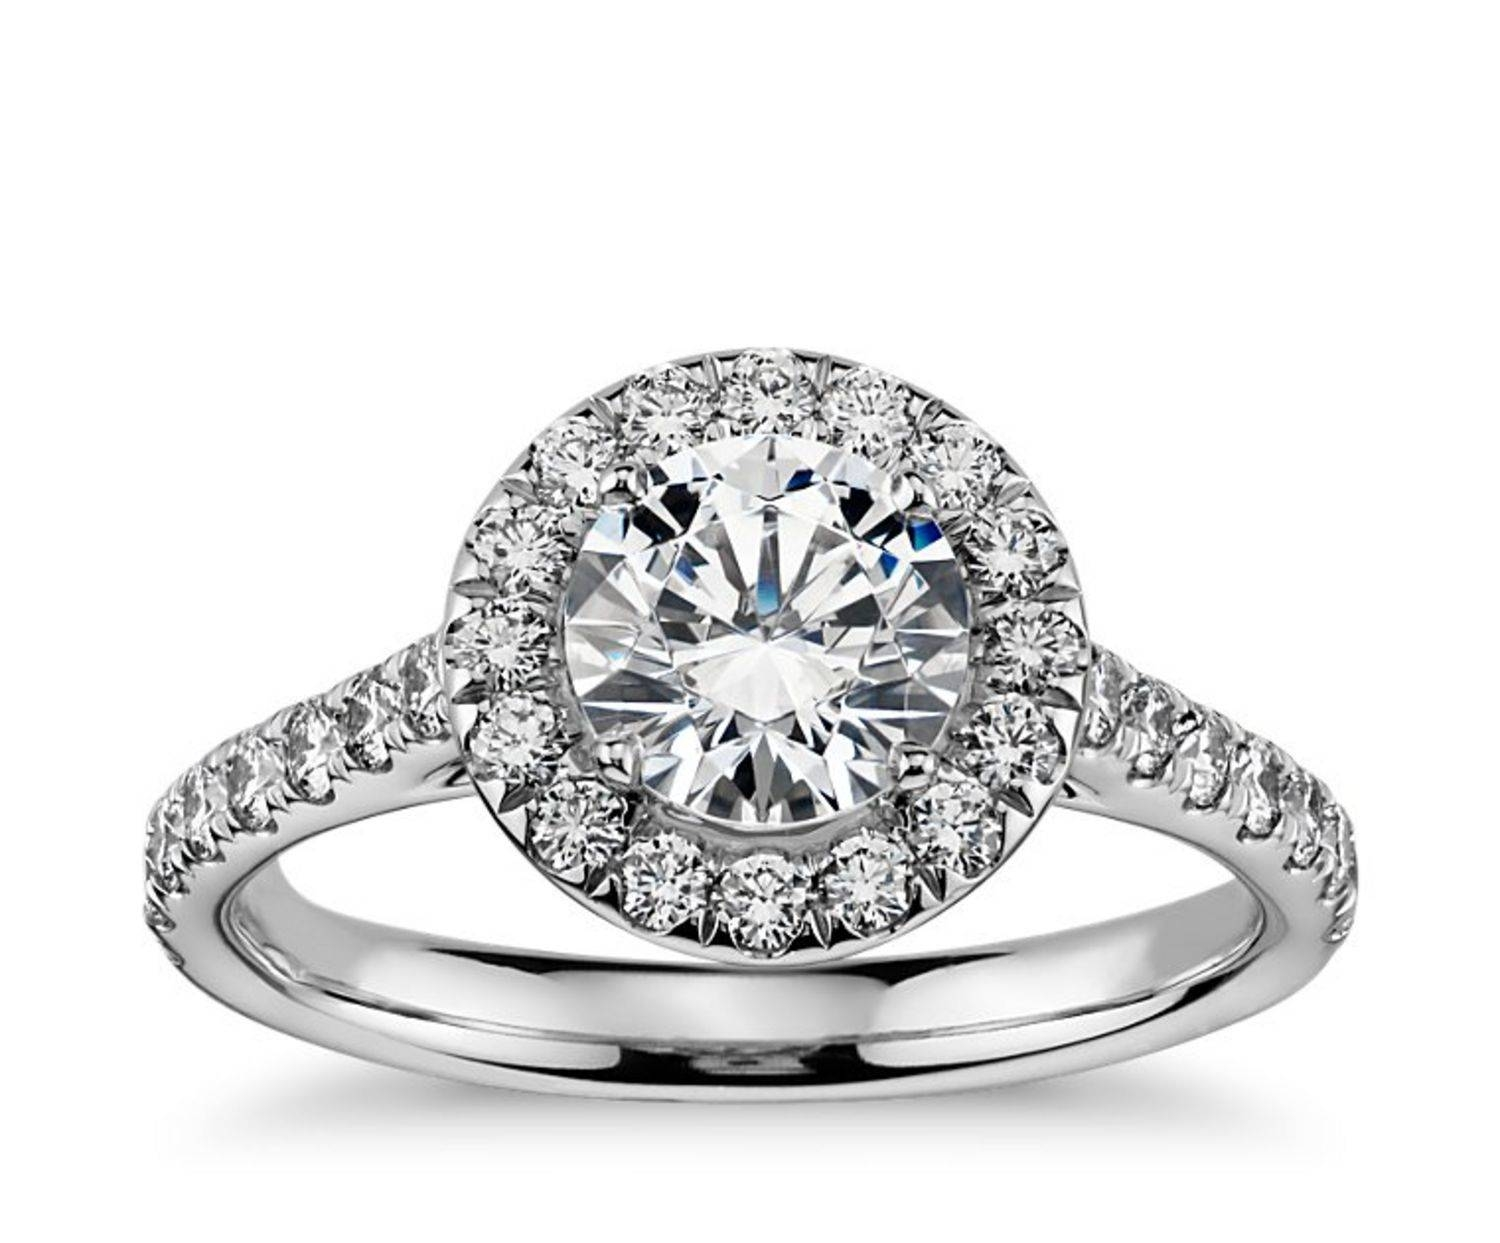 Wedding Rings : Where To Buy Affordable Wedding Rings Cheap Within Inexpensive Wedding Bands For Women (View 14 of 15)